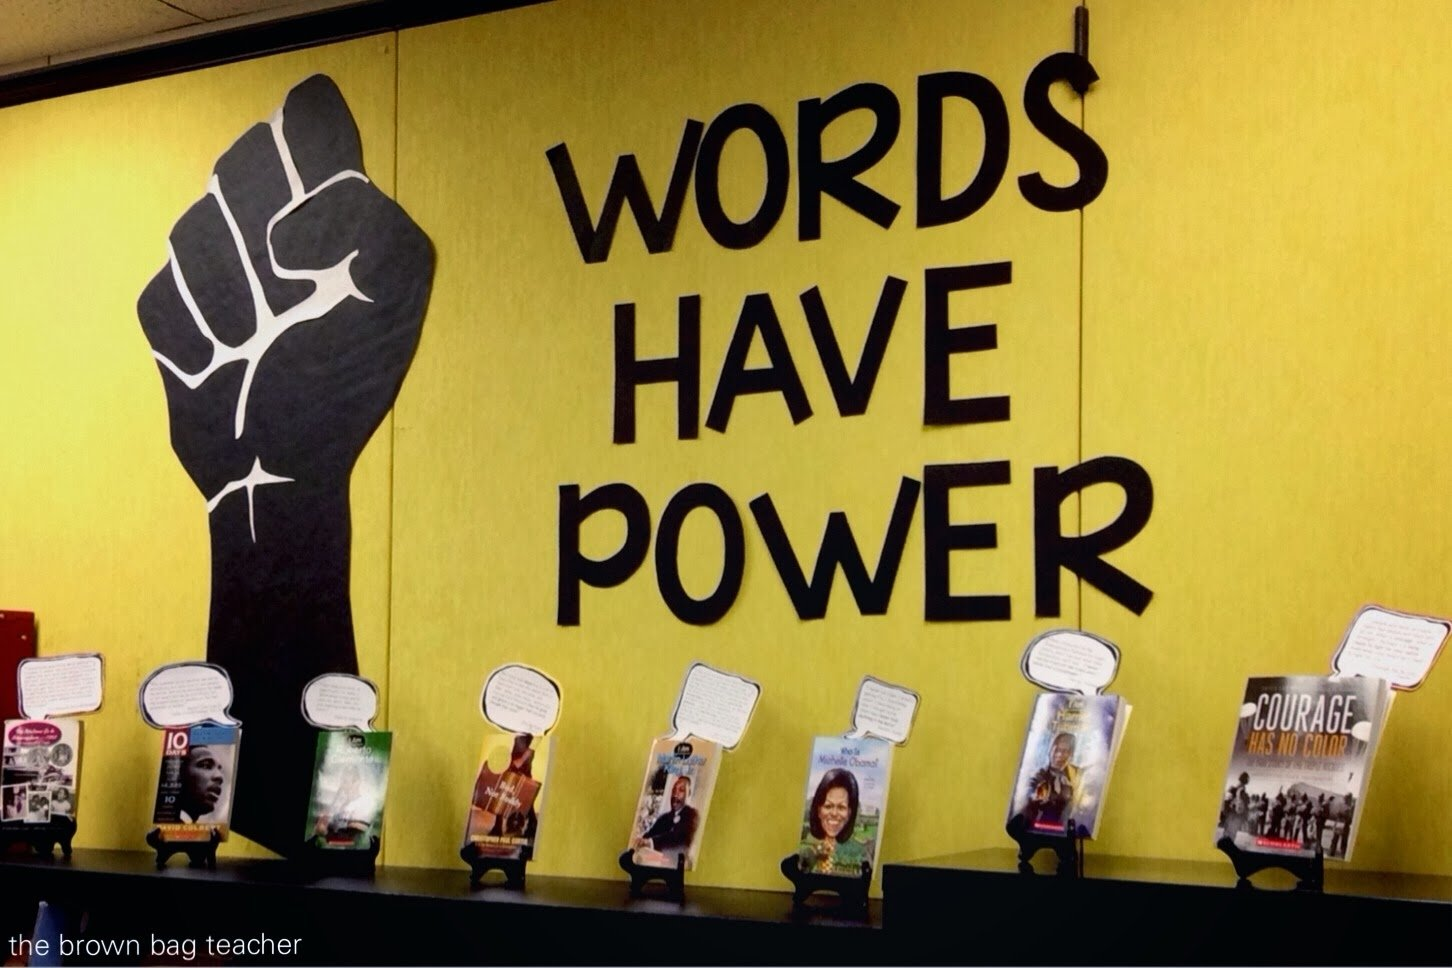 10 Fabulous Black History Month Bulletin Board Ideas words have power book display the brown bag teacher 1 2021